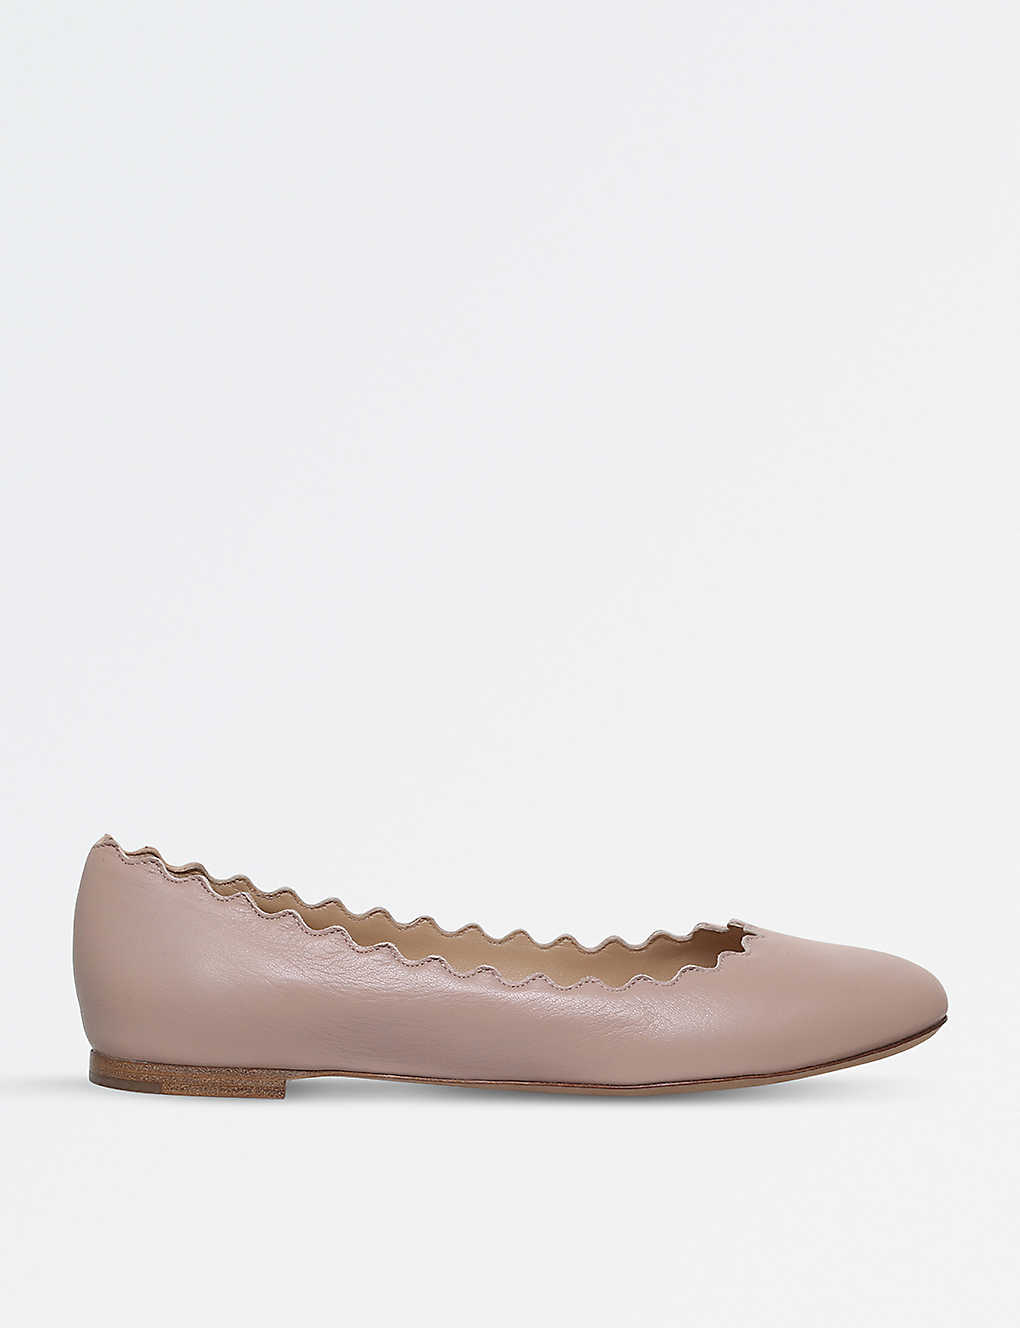 78ad4879f CHLOE - Lauren leather ballet flats | Selfridges.com